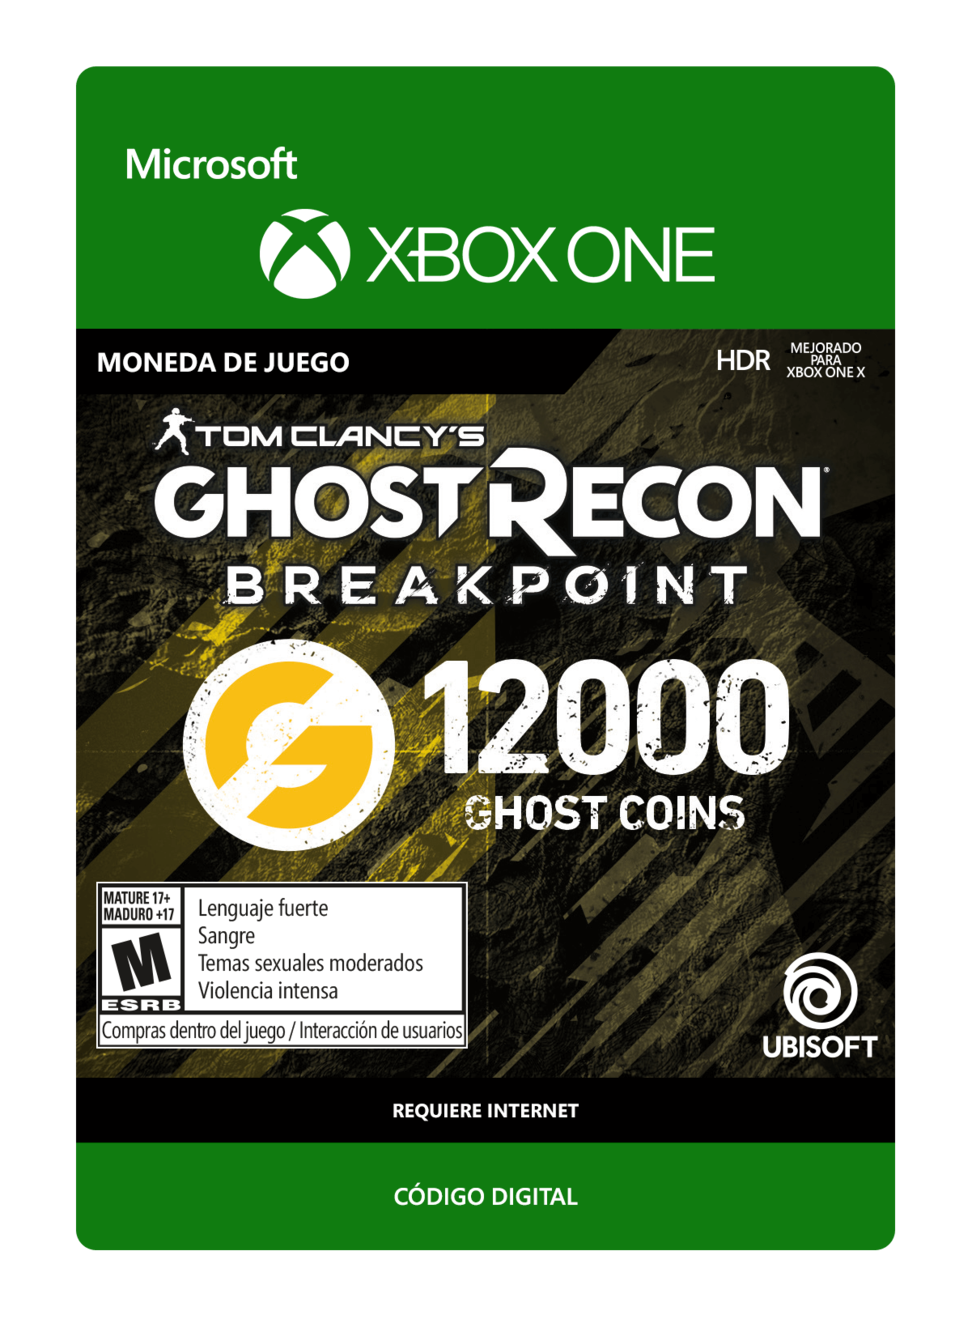 Tom Clancy s Ghost Recon Breakpoint 12000 Ghost coins